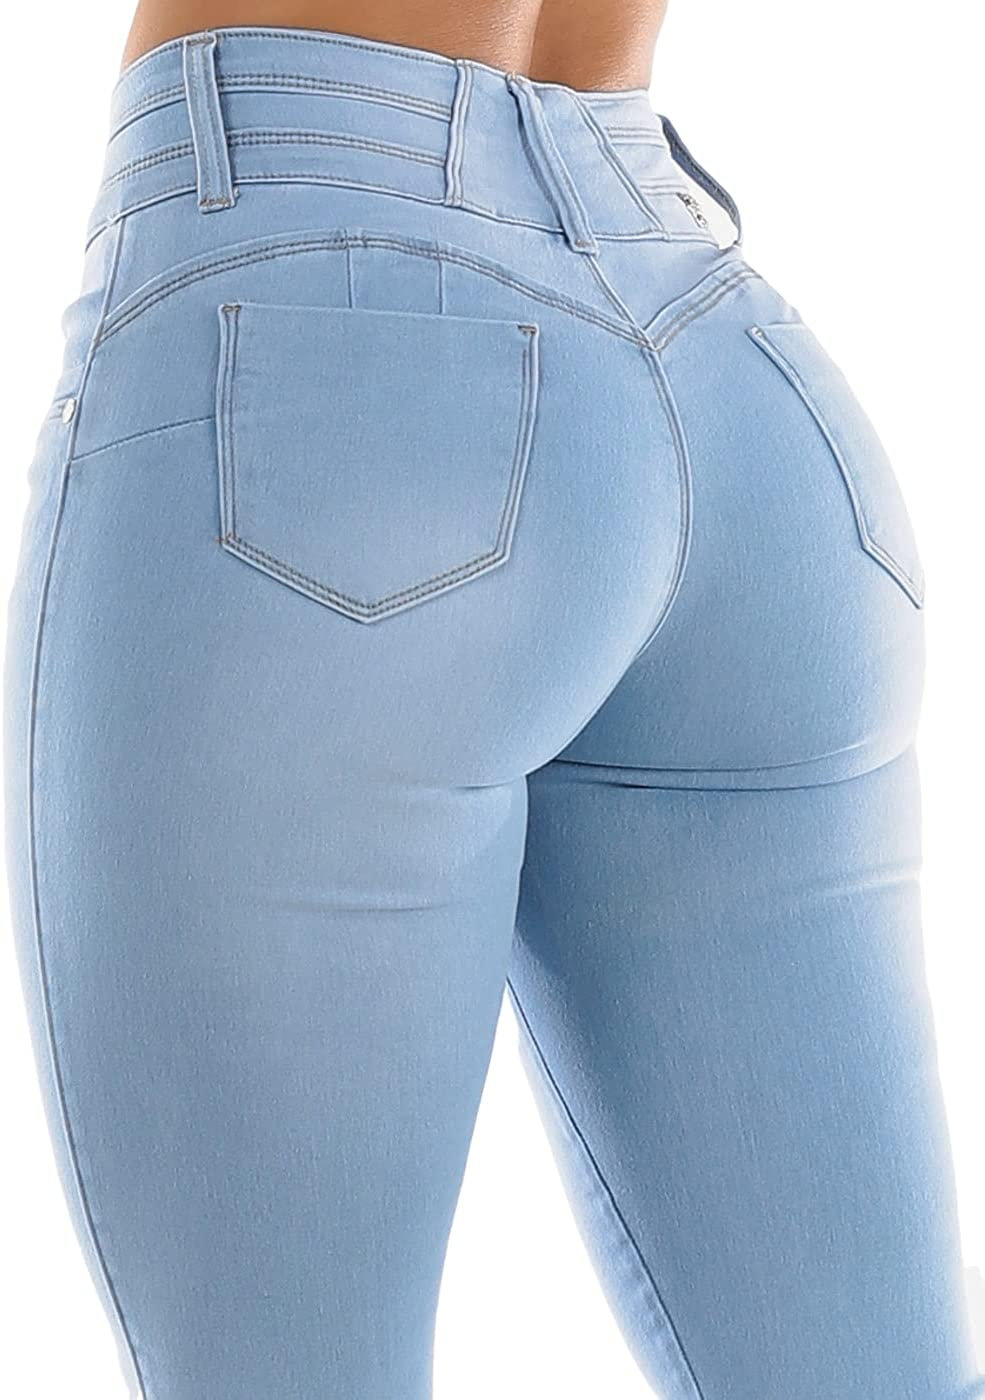 Women's Push-Up Butt Lifting Solid Mid Rise Stretchy Skinny Jeans 10982C